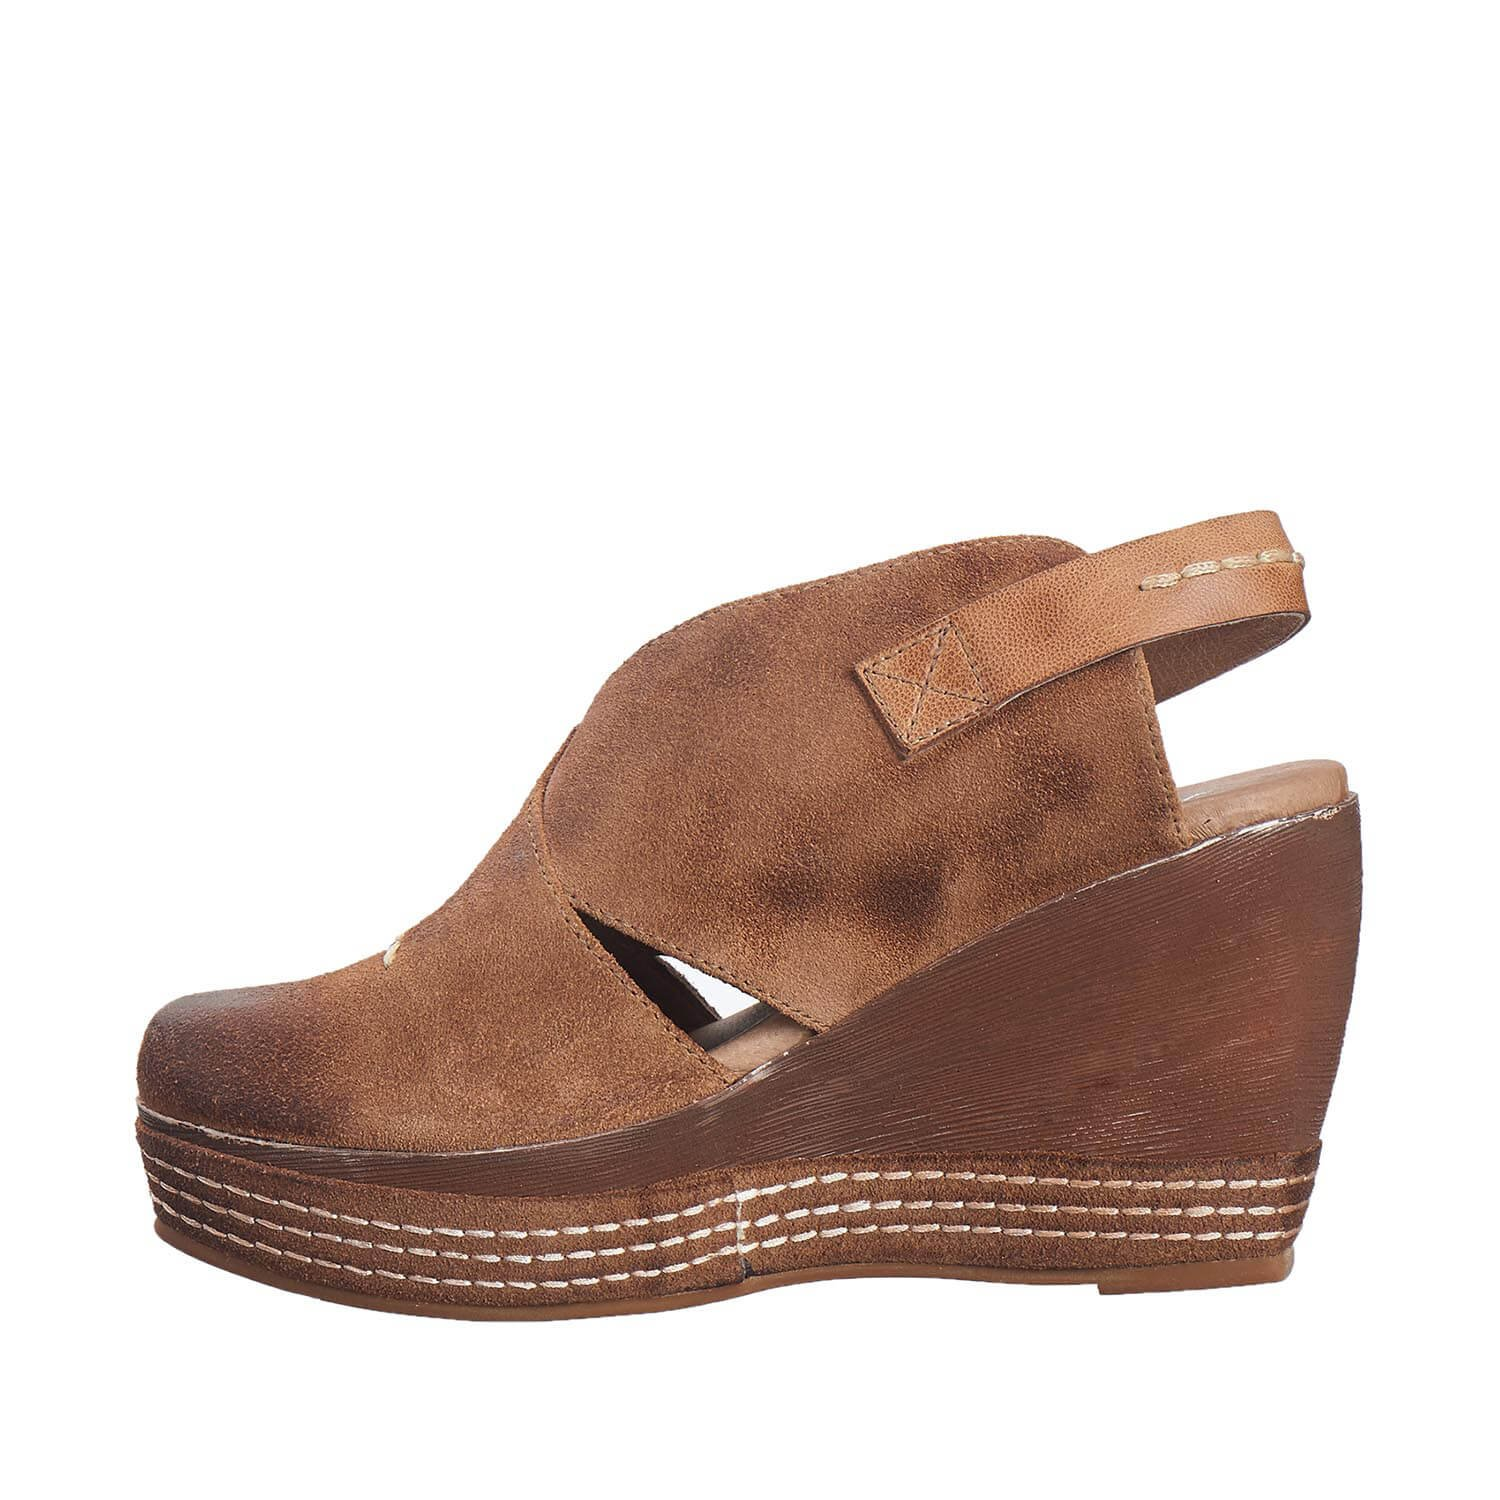 Antelope Women's 836 Taupe Suede Cutout Sling Wedge 38 by Antelope (Image #3)